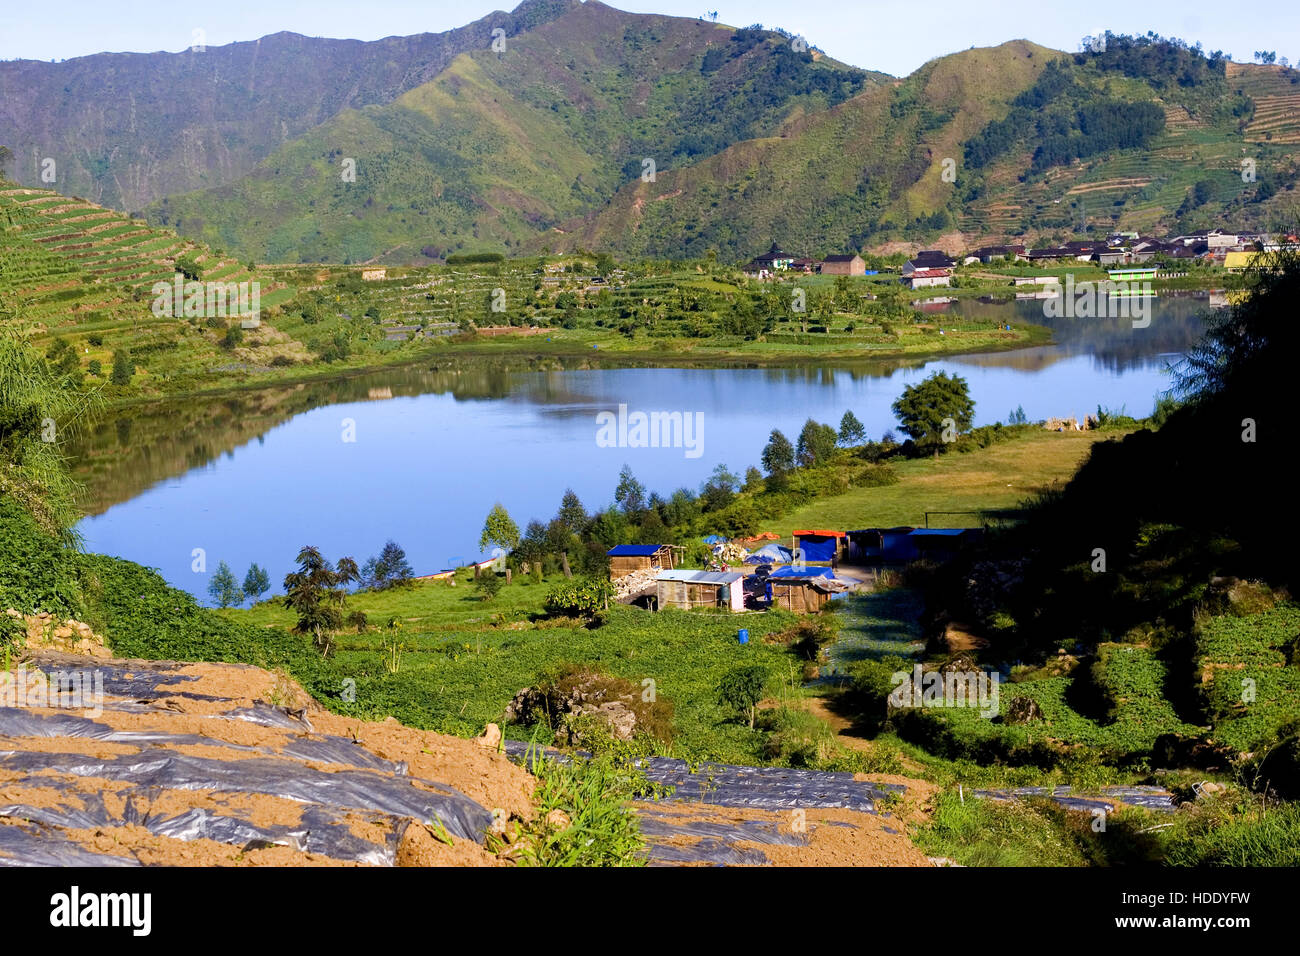 Cebong Lake situated in the village Sembungan , a village in Central Java supreme. - Stock Image